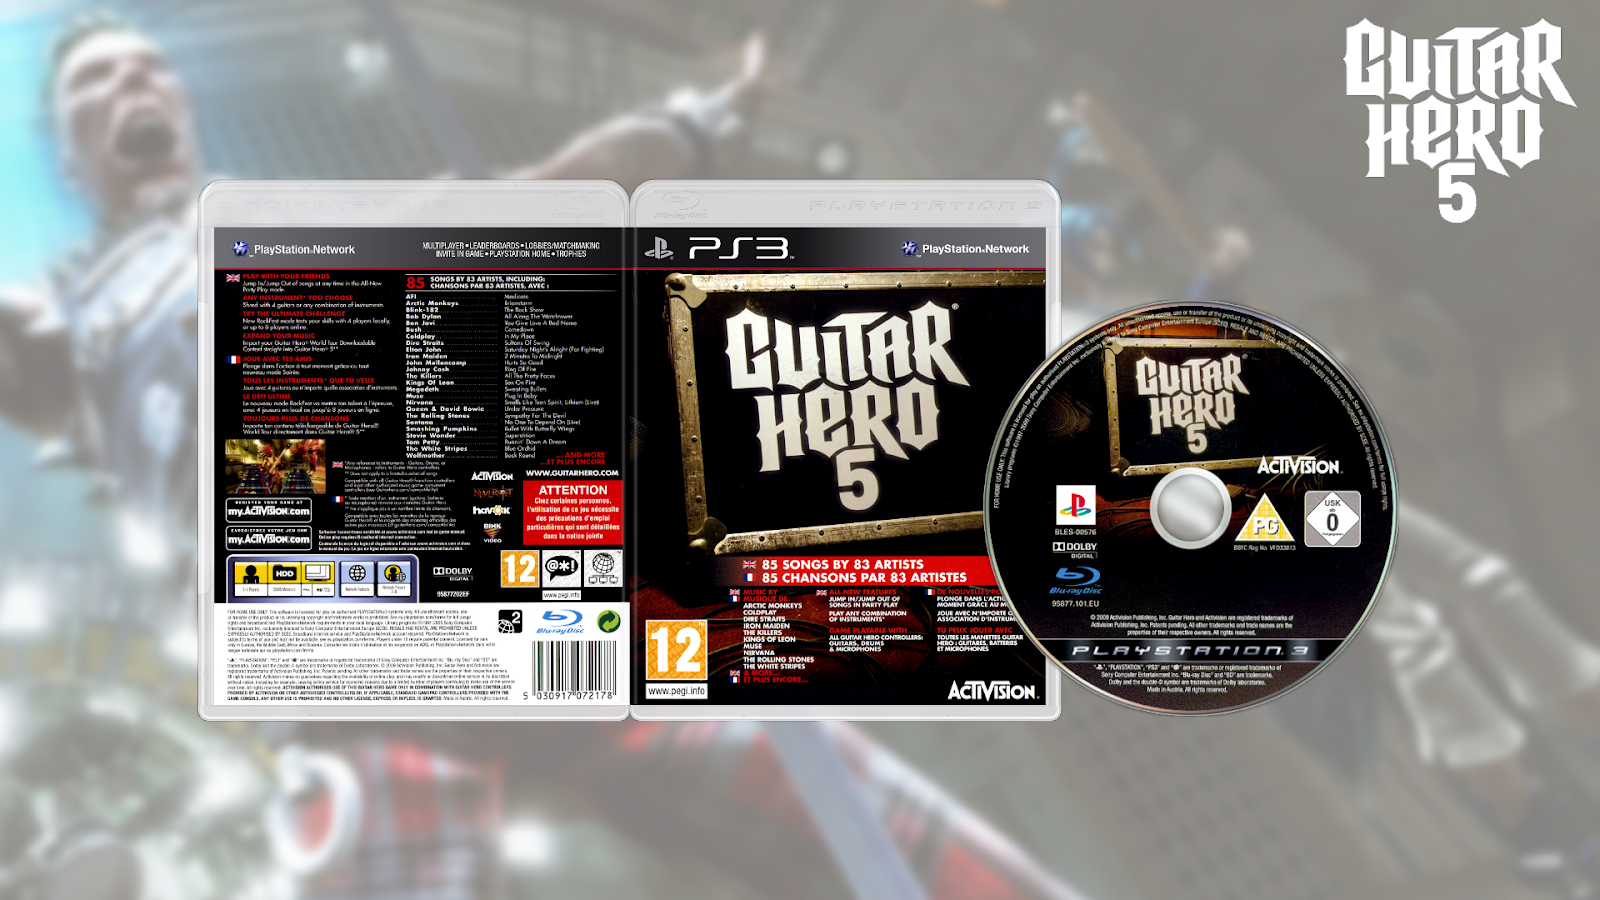 Guitar hero songs torrent